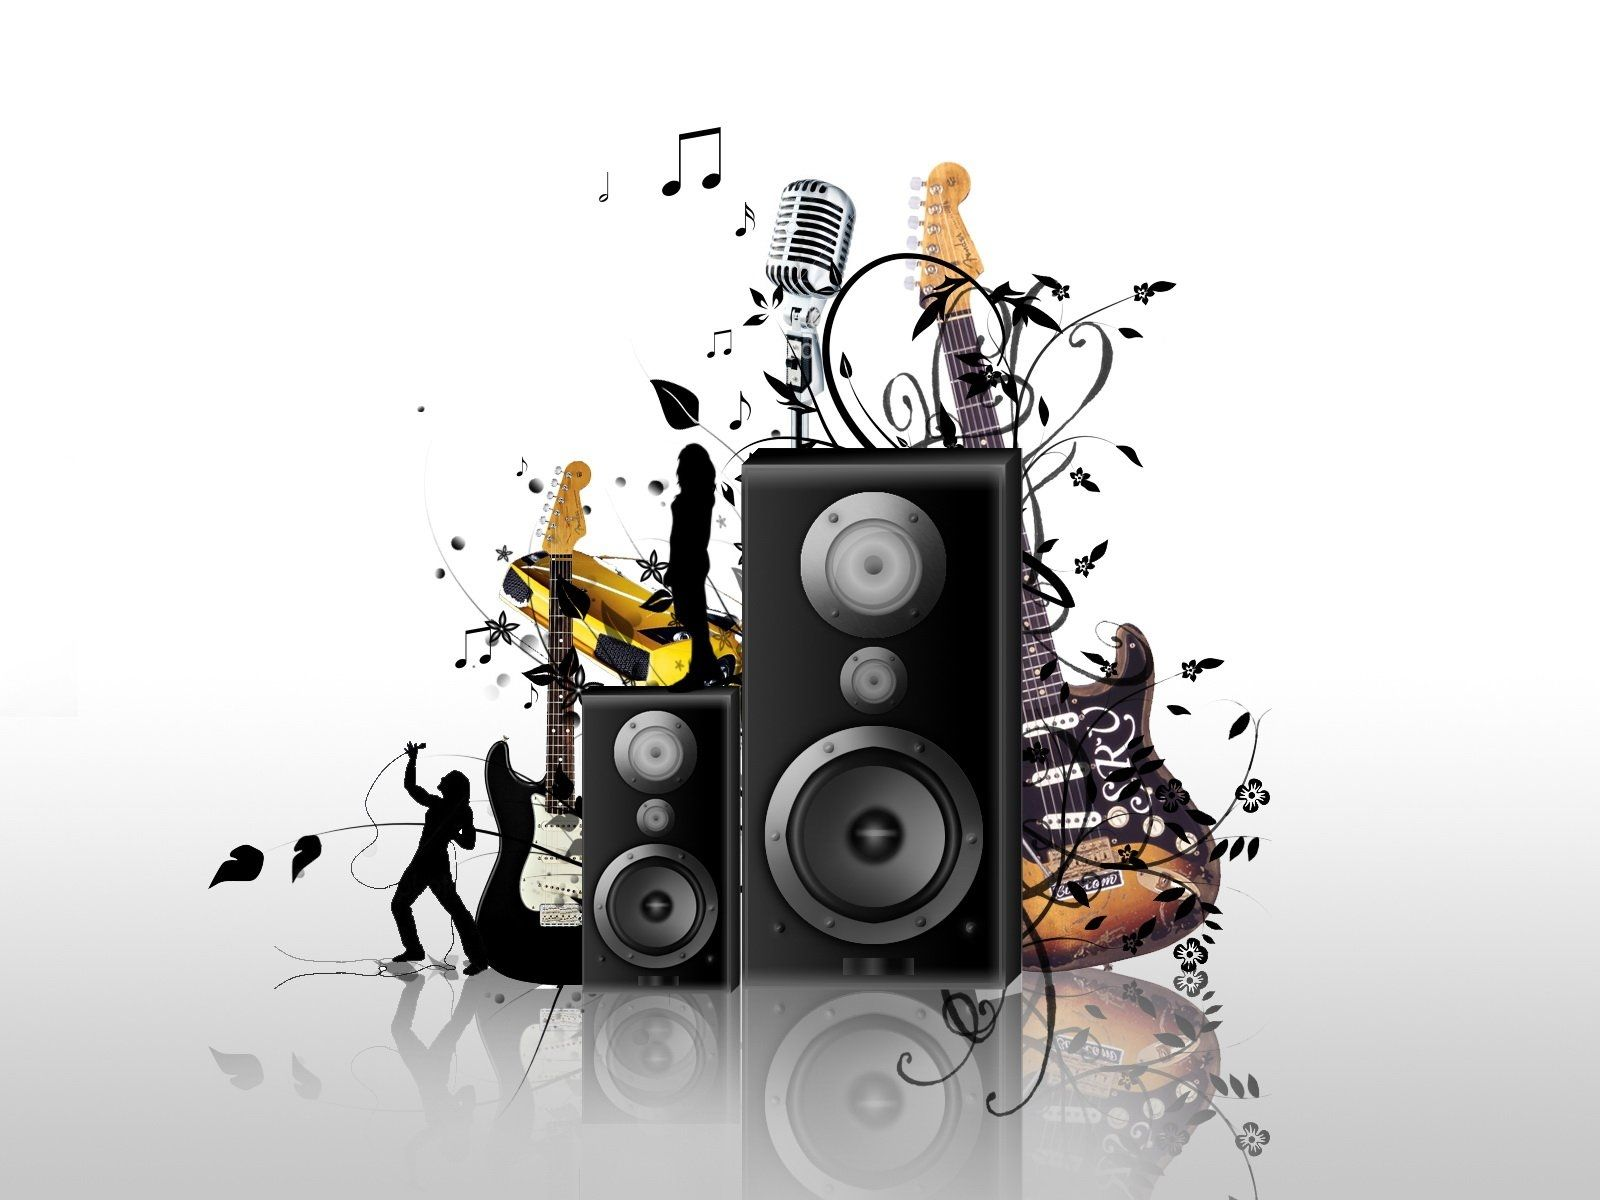 Cool Background Music Mp3 Hd Music Wallpaper Download Free